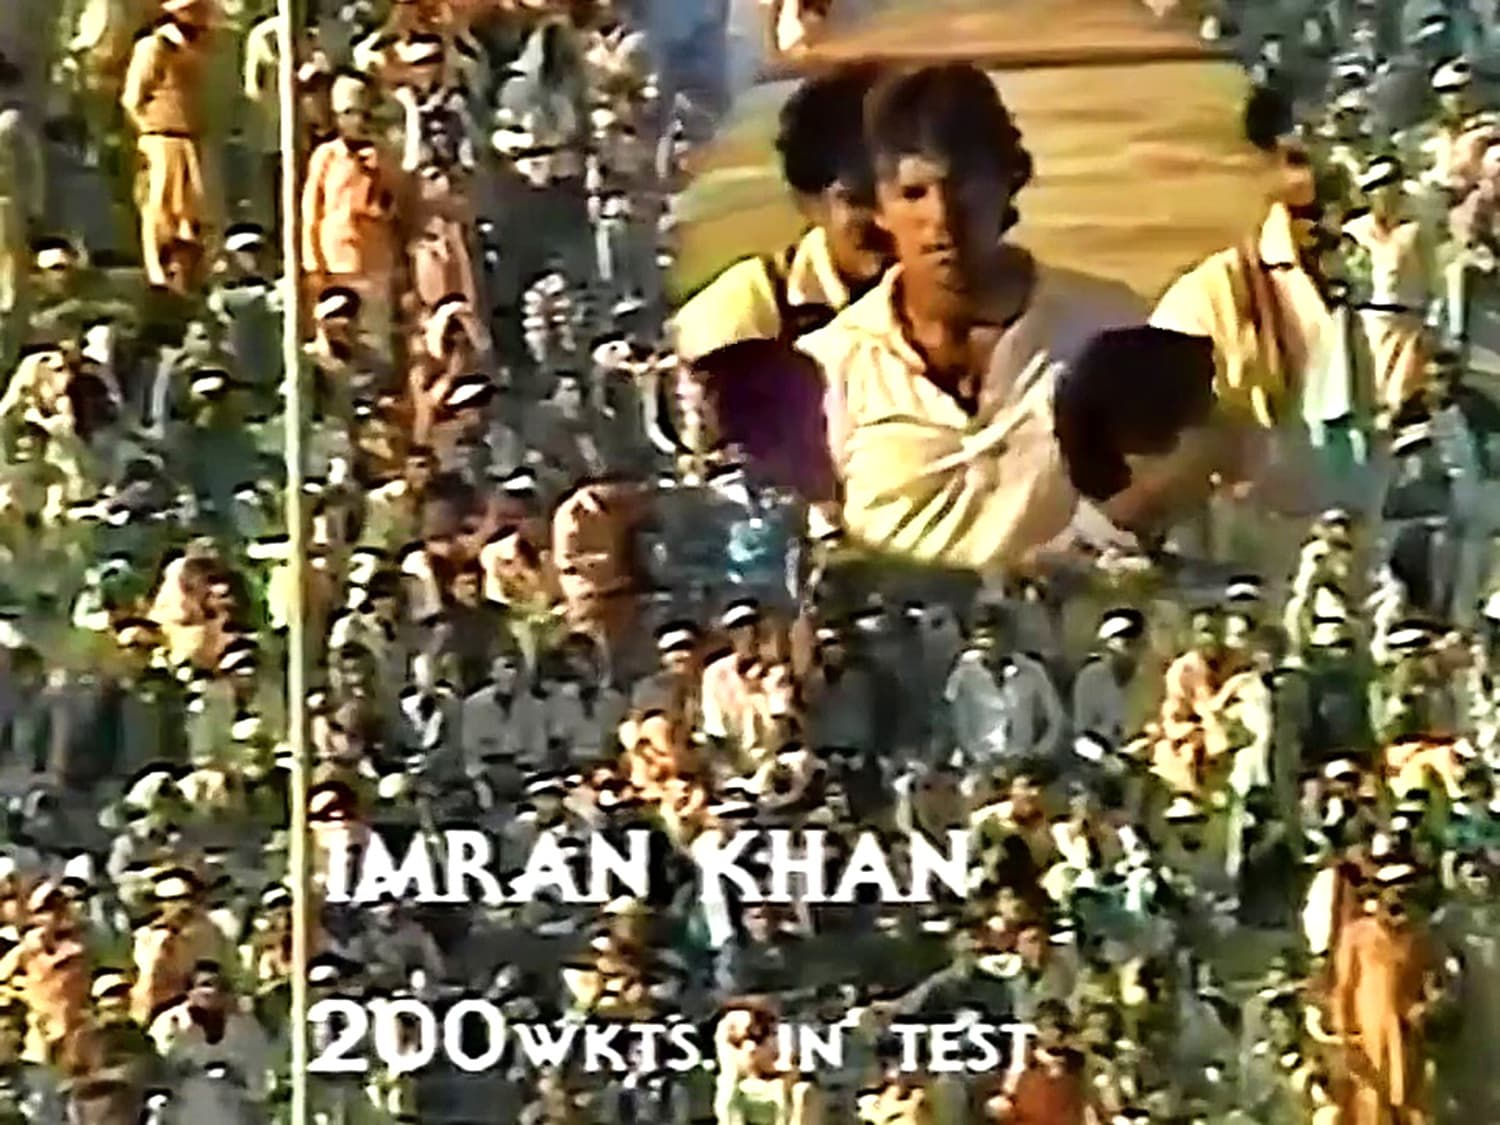 1982: Video-grab of the large crowd applauding Imran Khan's 200th Test wicket which he took against India at National Stadium in 1982.